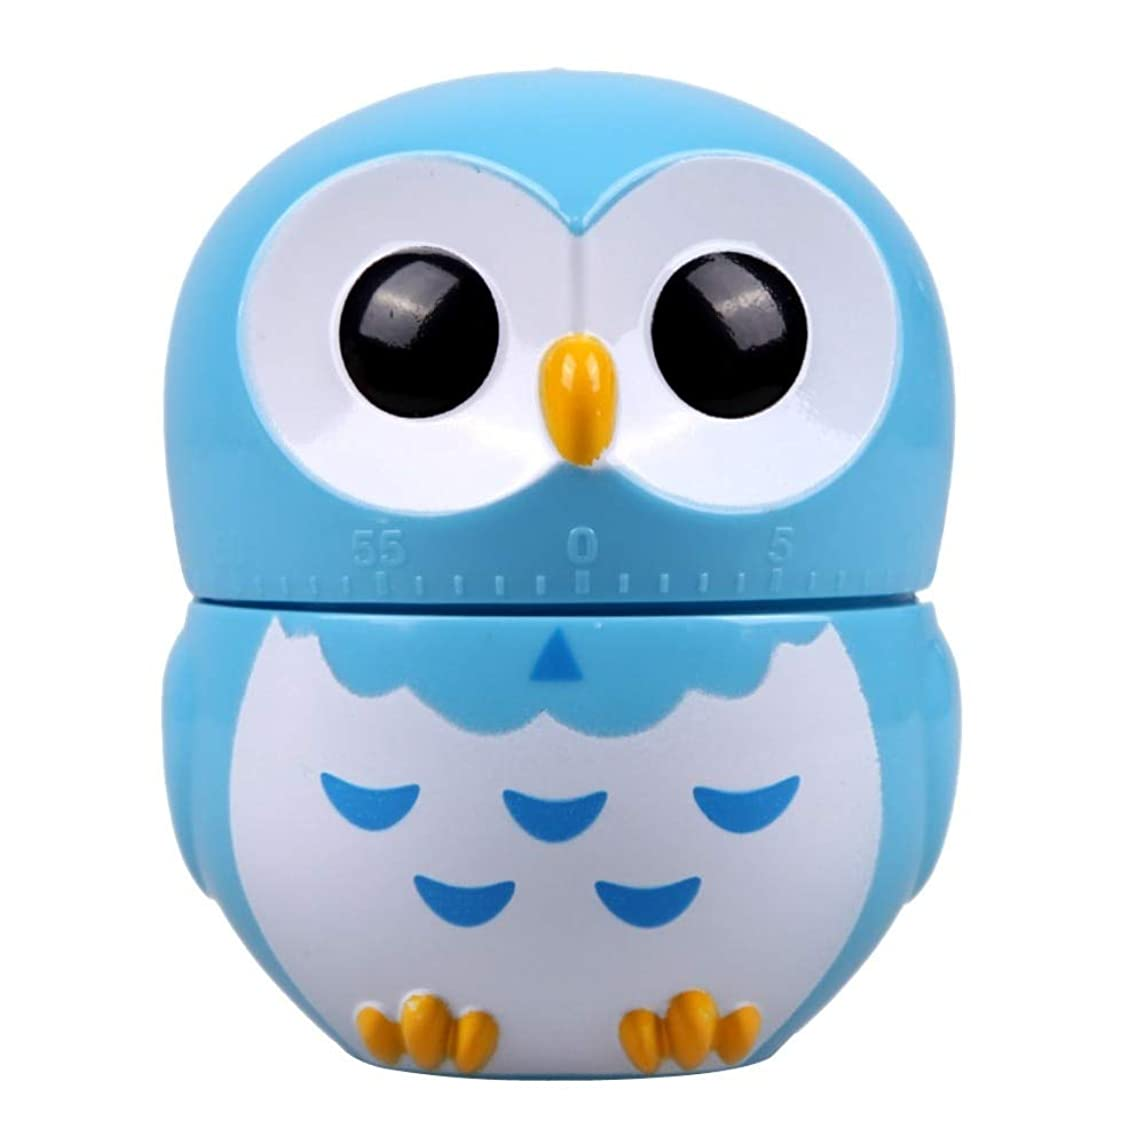 Procyon - Owl Cartoon Kitchen Timers 60 Minutes Cooking Mechanical Home Decor Blue Dial Timers